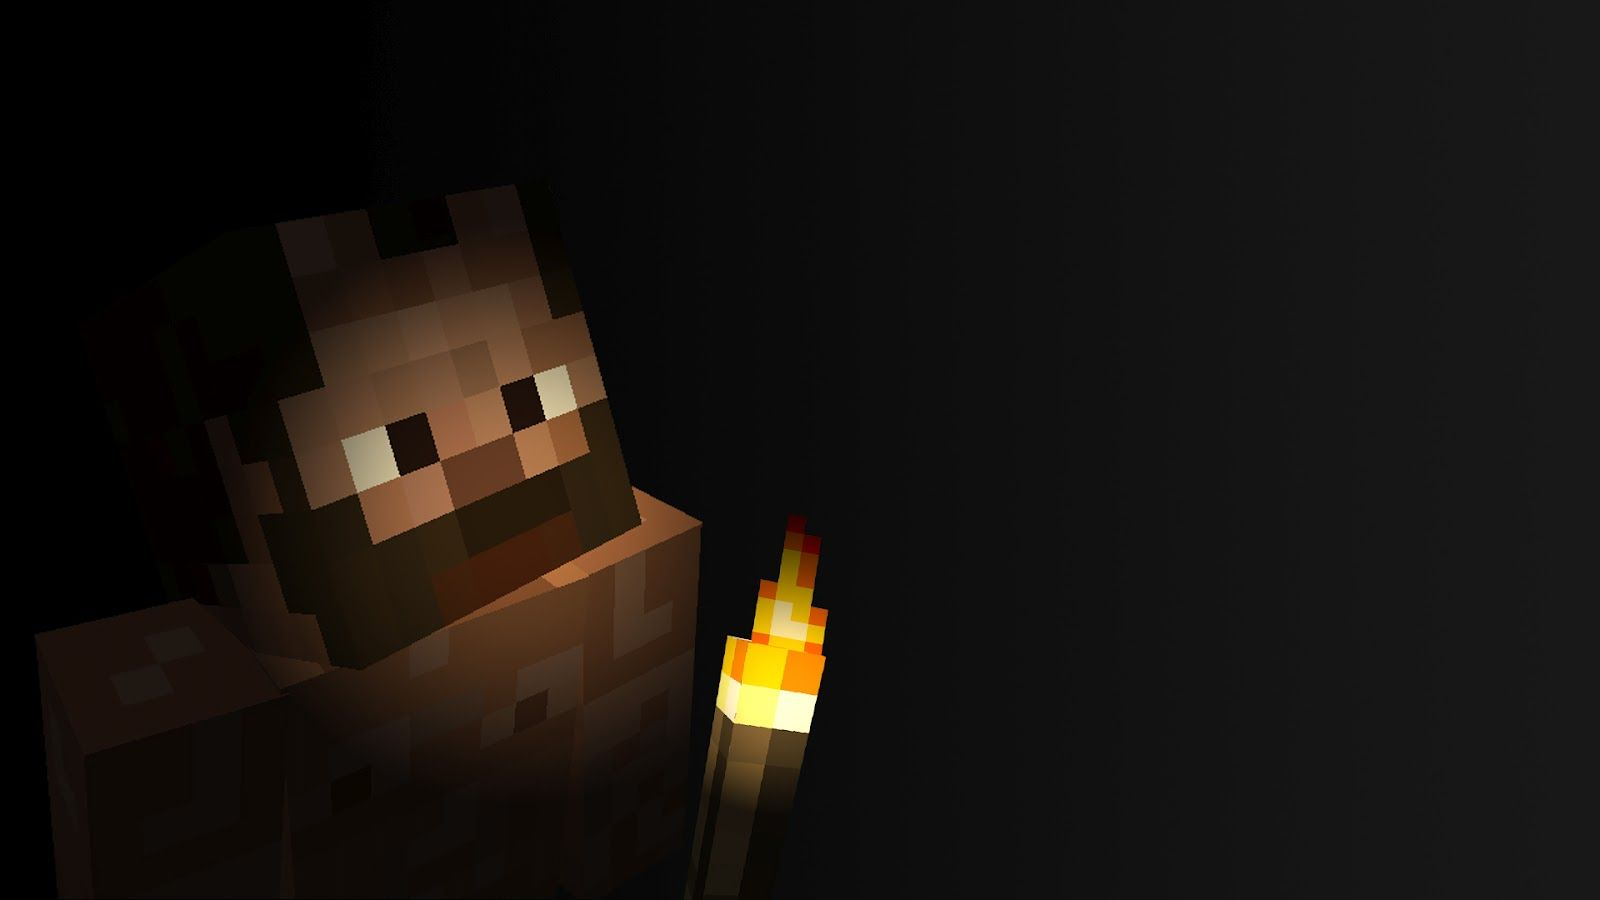 Simple Wallpaper Minecraft Dark - 8f5a7ccecf1d2af188957b8a9cb0e731  Best Photo Reference_279512.jpg